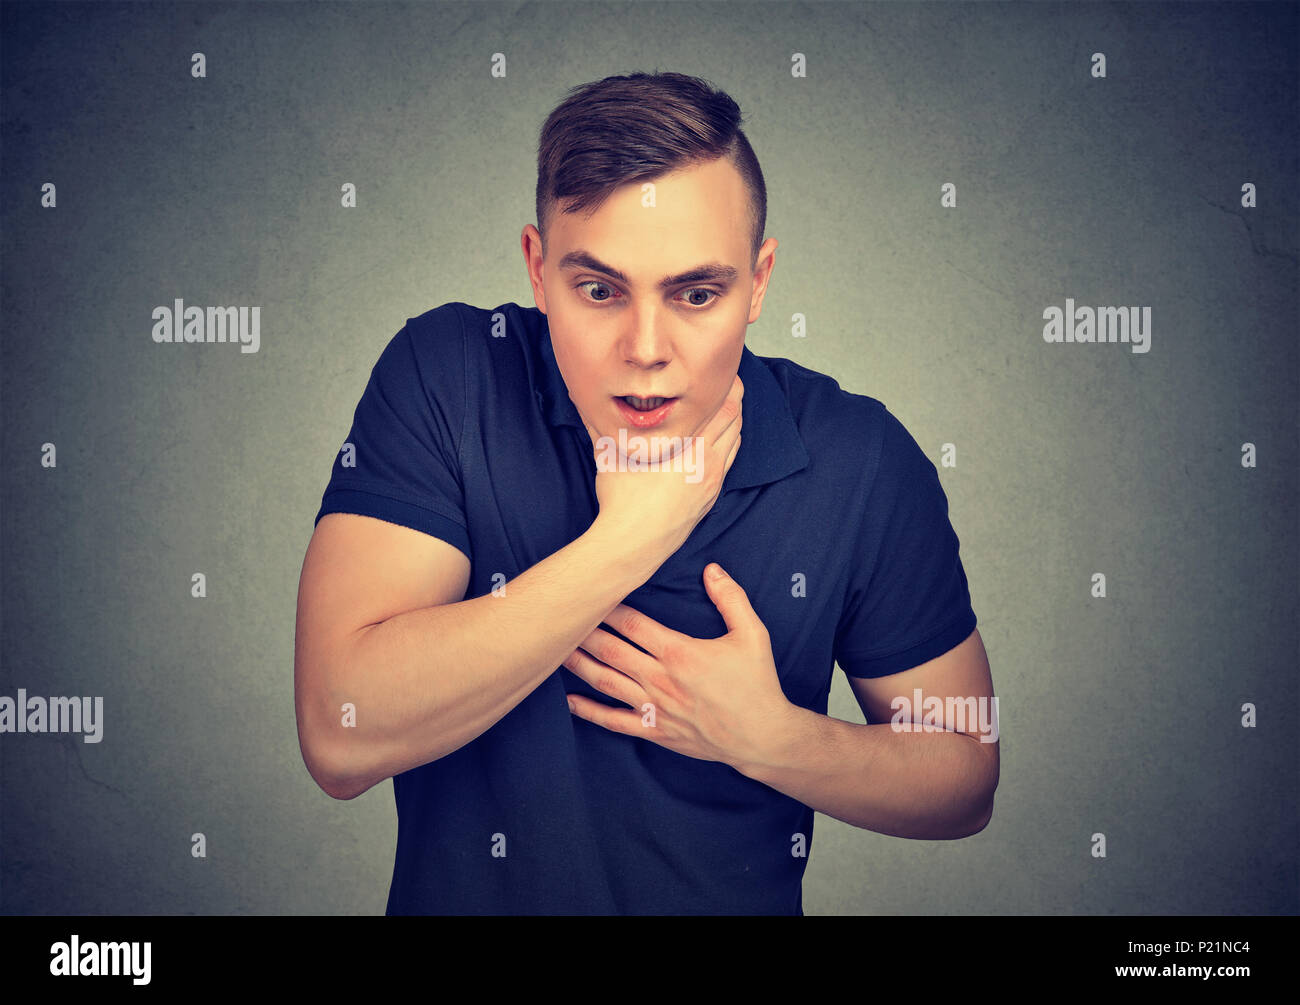 Young man having asthma attack or choking suffering from respiration problems isolated on gray background Stock Photo